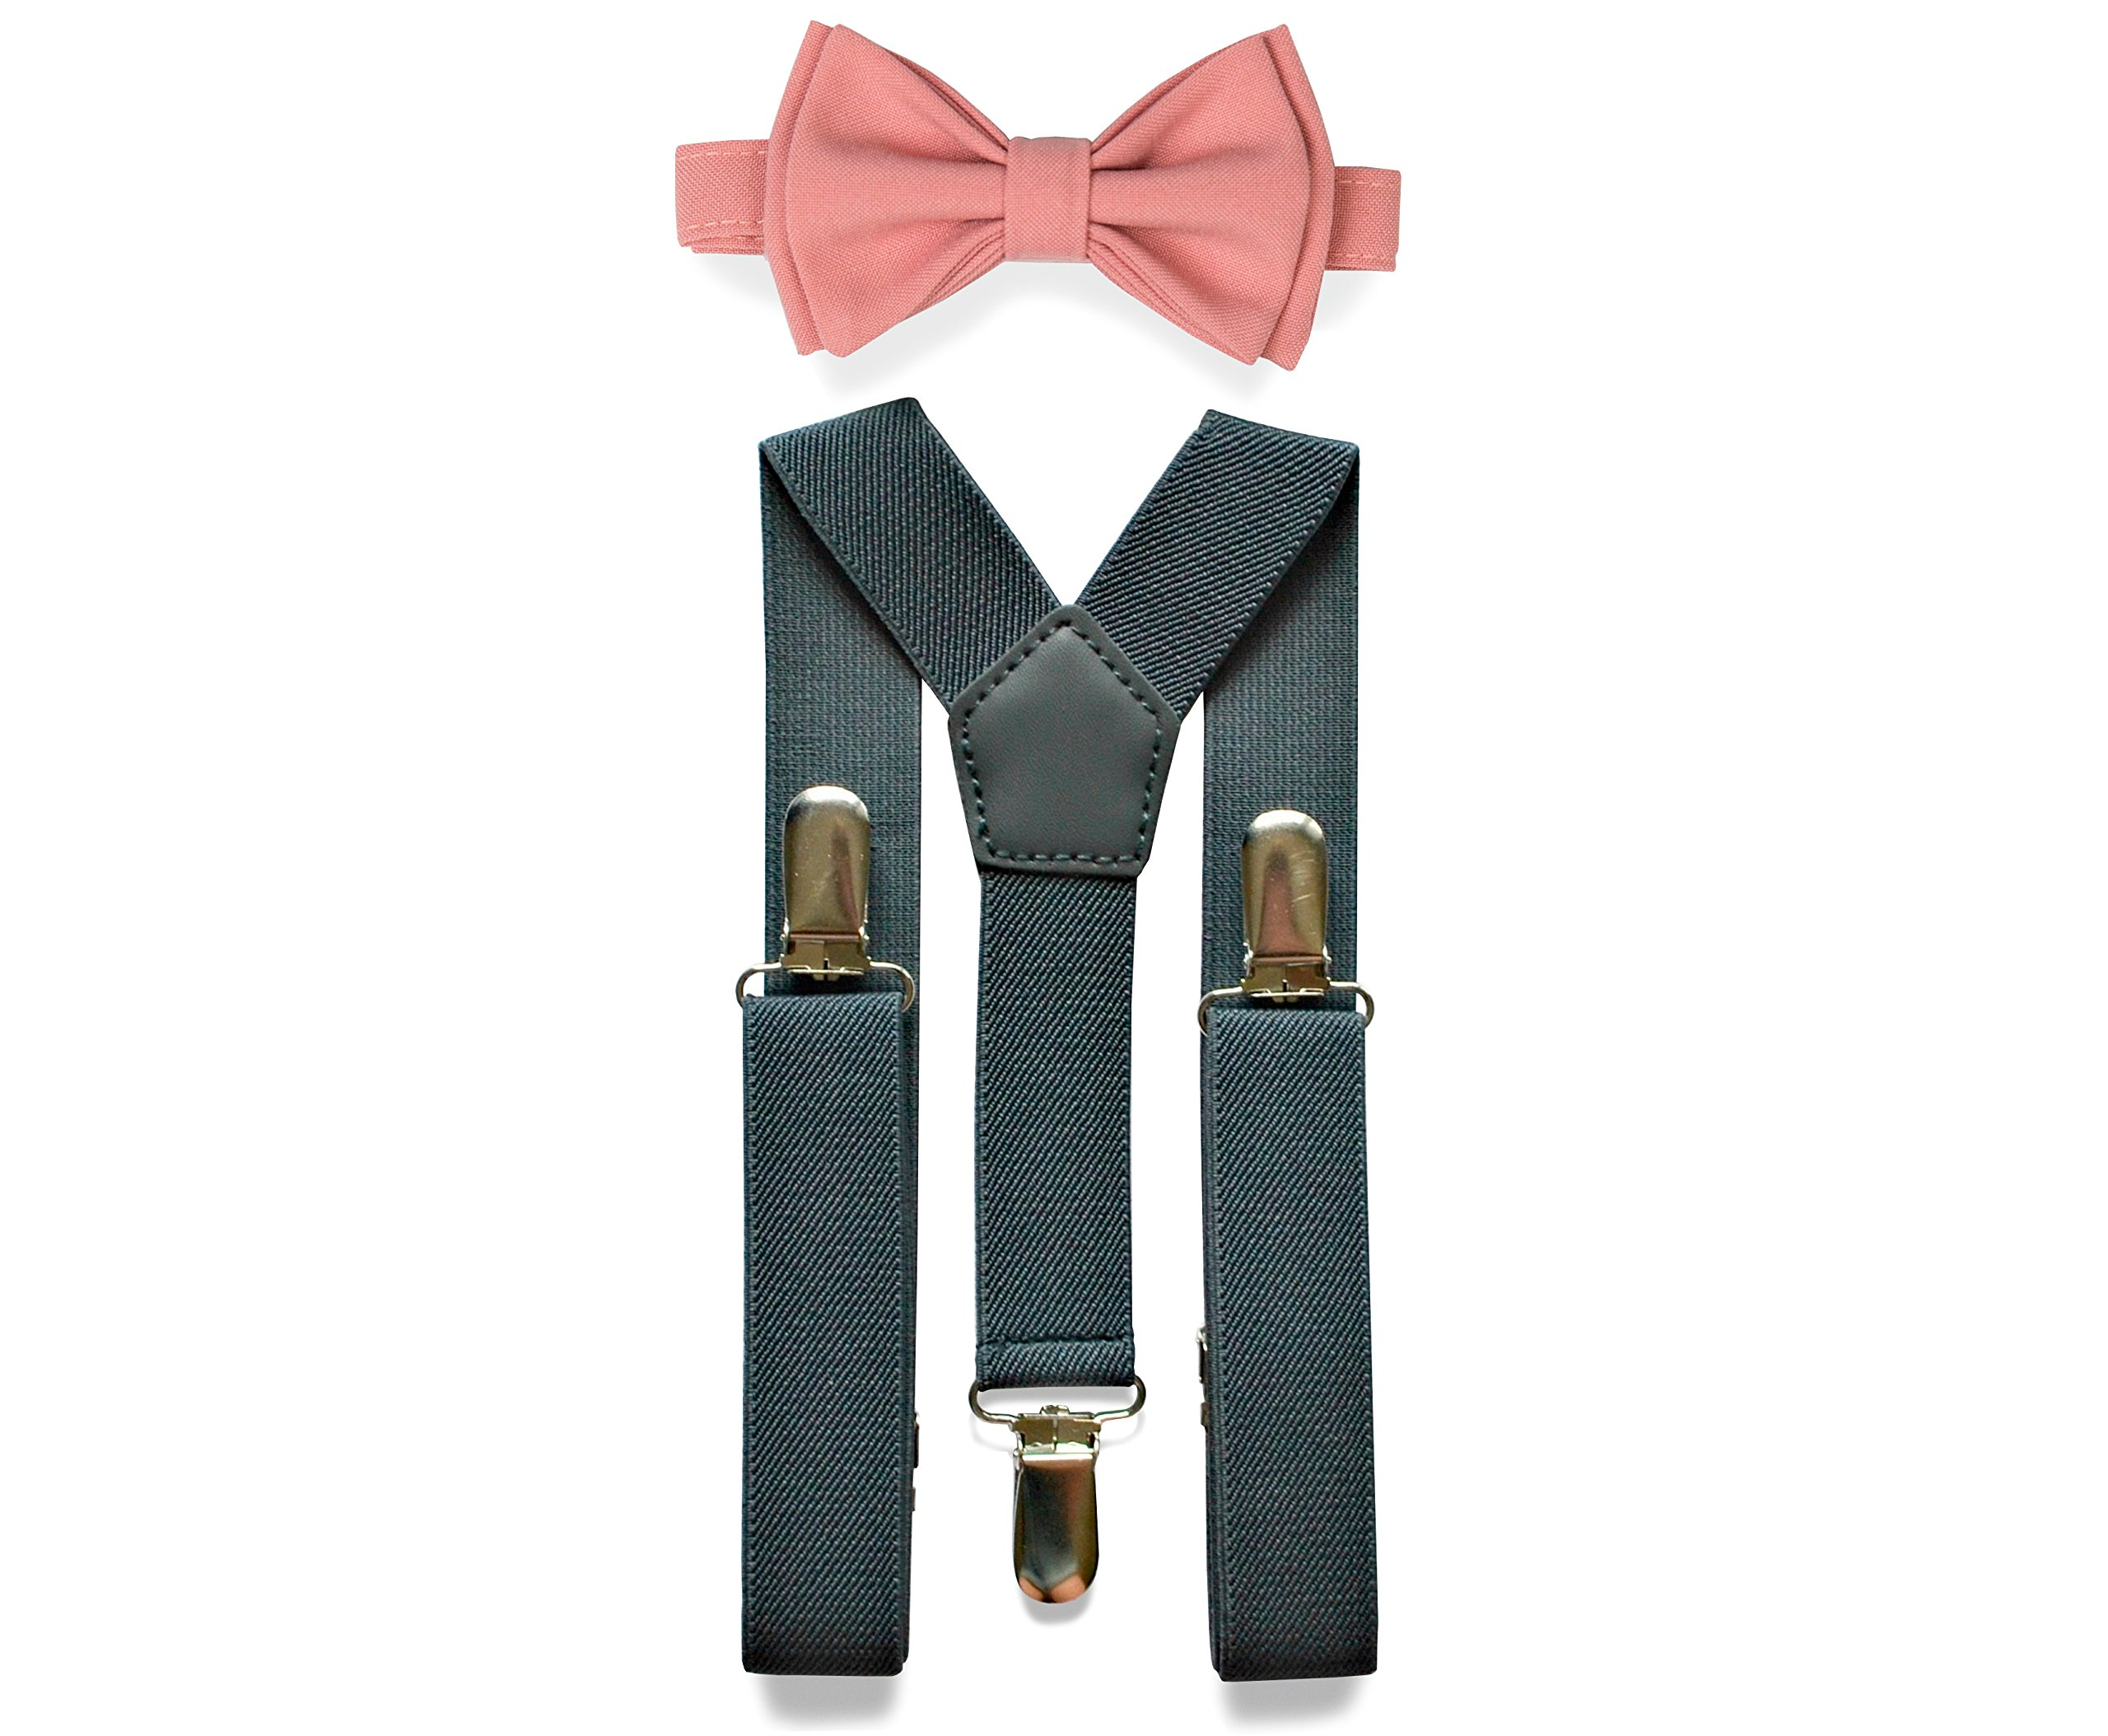 Charcoal Grey Suspenders & Bow Tie Set for Baby Toddler Boy Teen Men (2. Toddler (18 mo - 6 yrs), Charcoal Grey Suspenders, Dusty Rose Bow Tie)